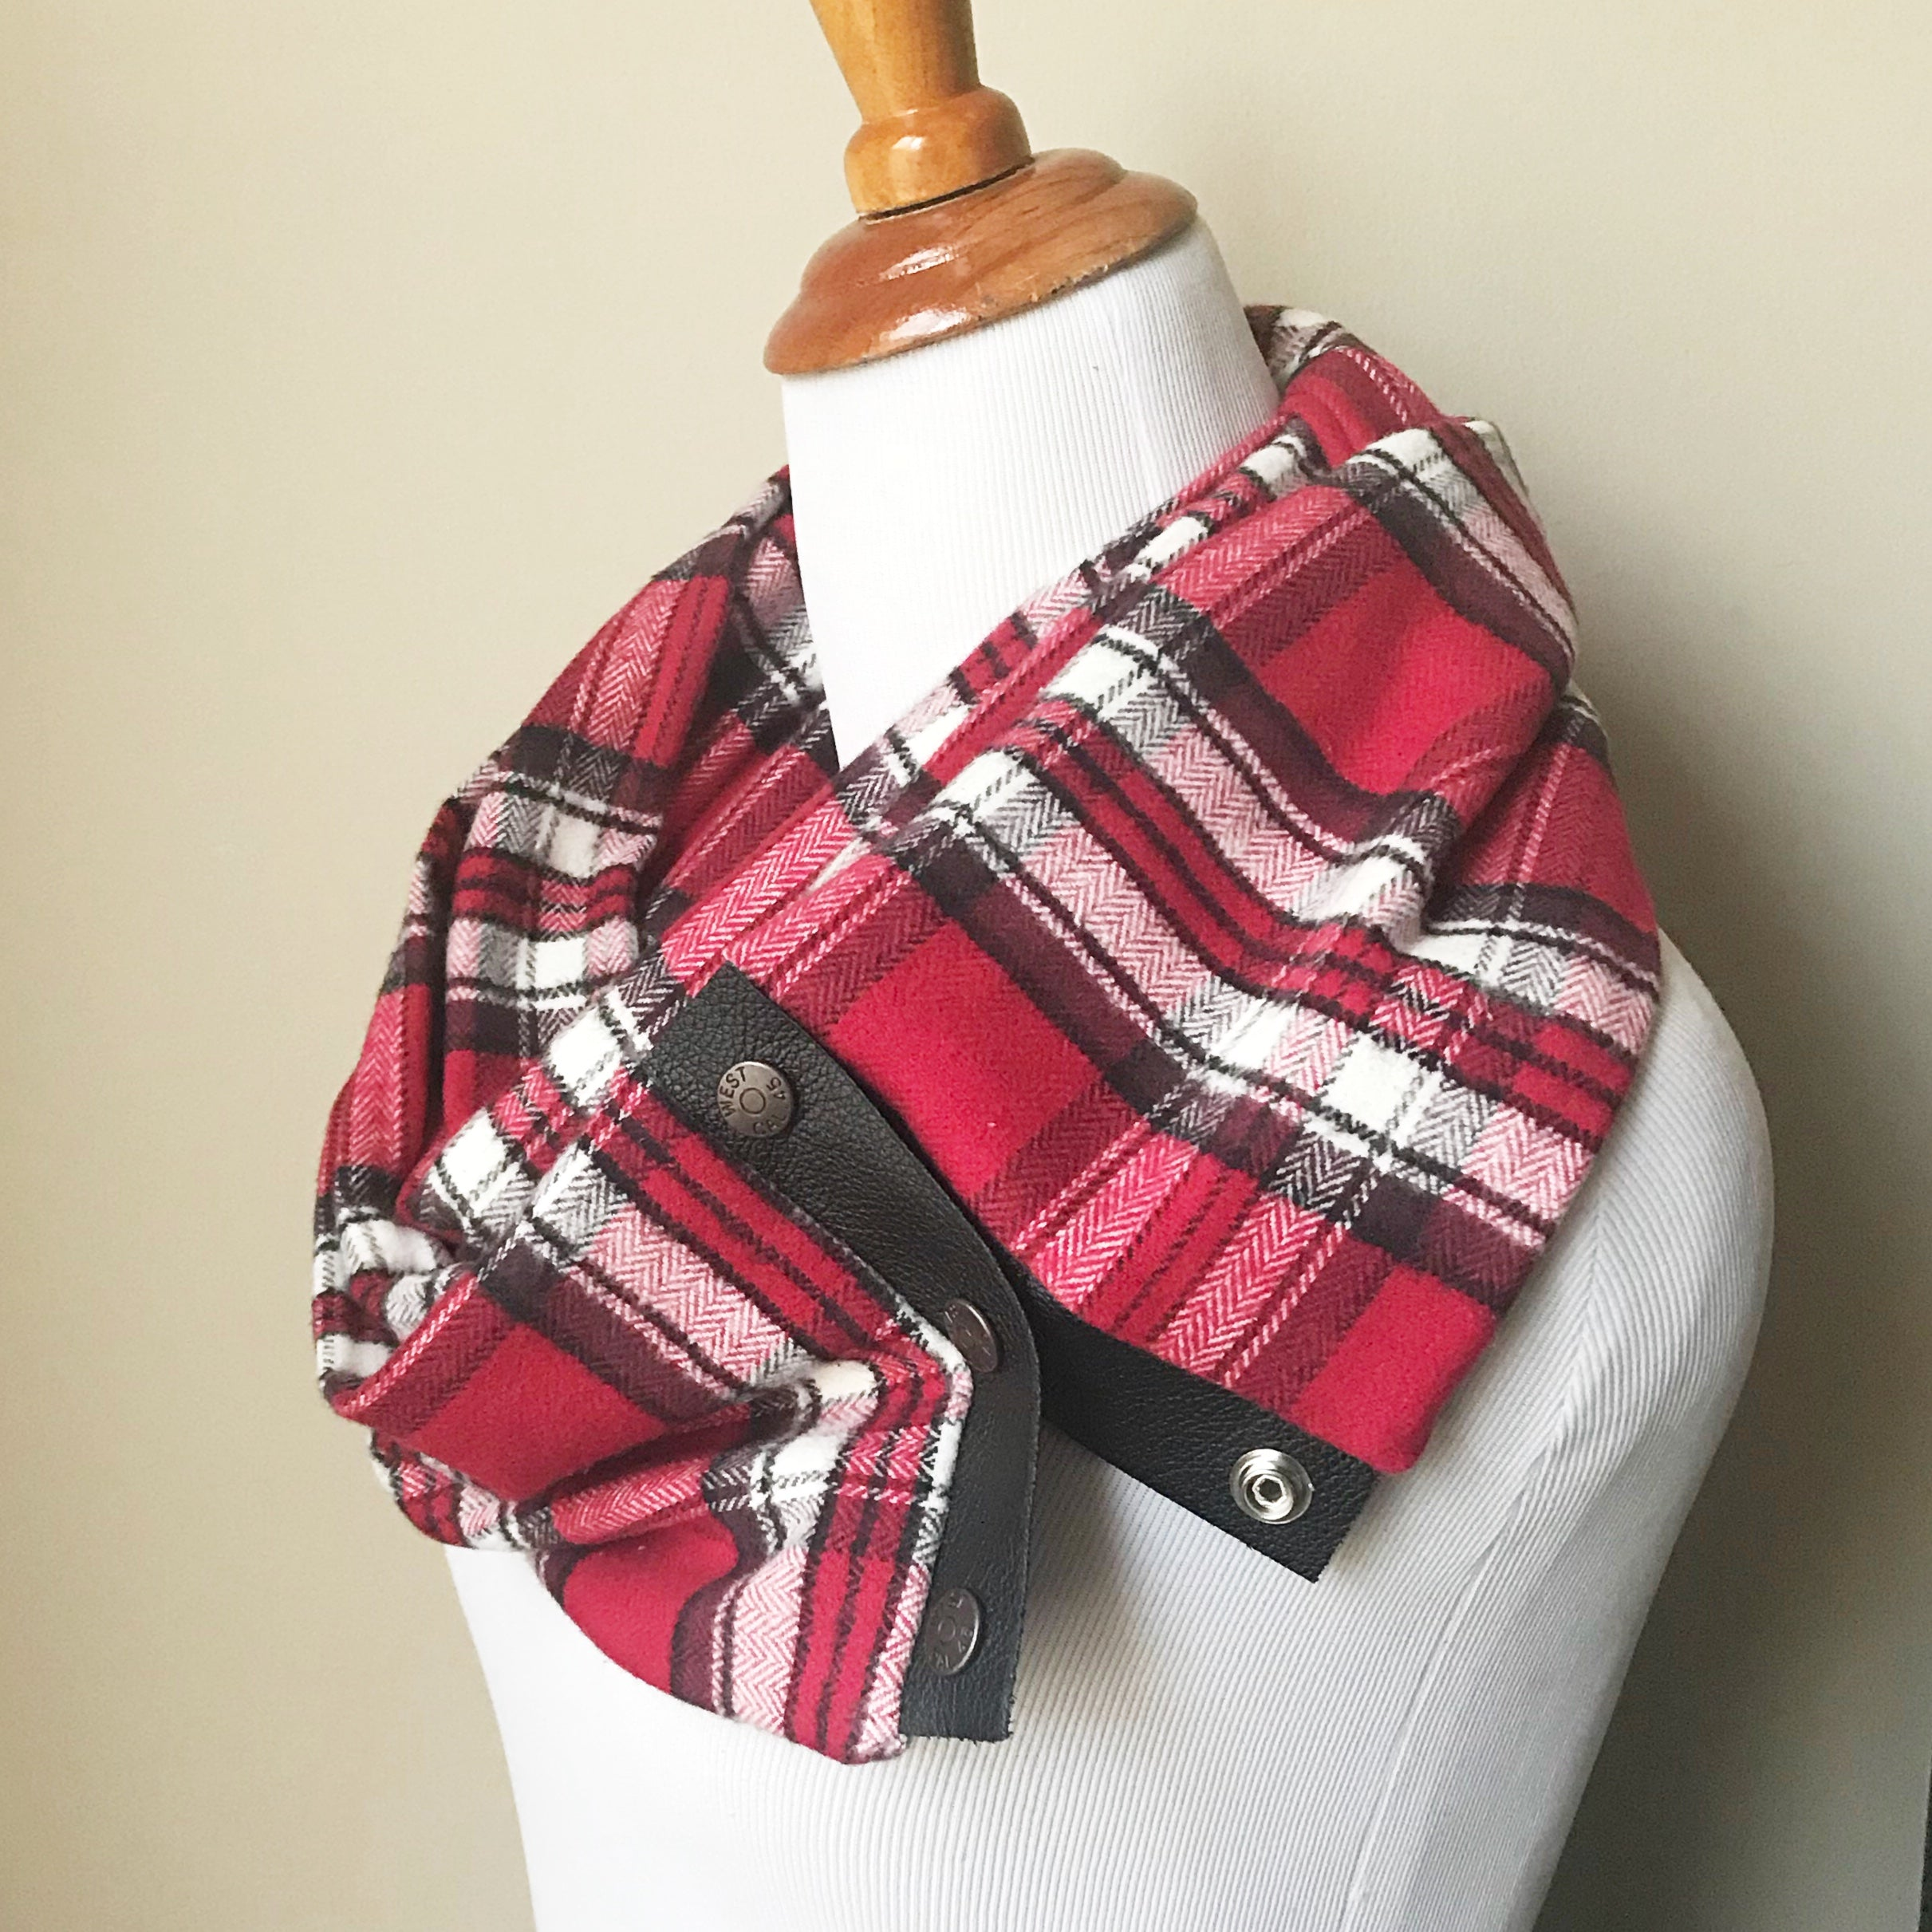 Red Herringbone Plaid Scarf with Leather Trim and Snaps